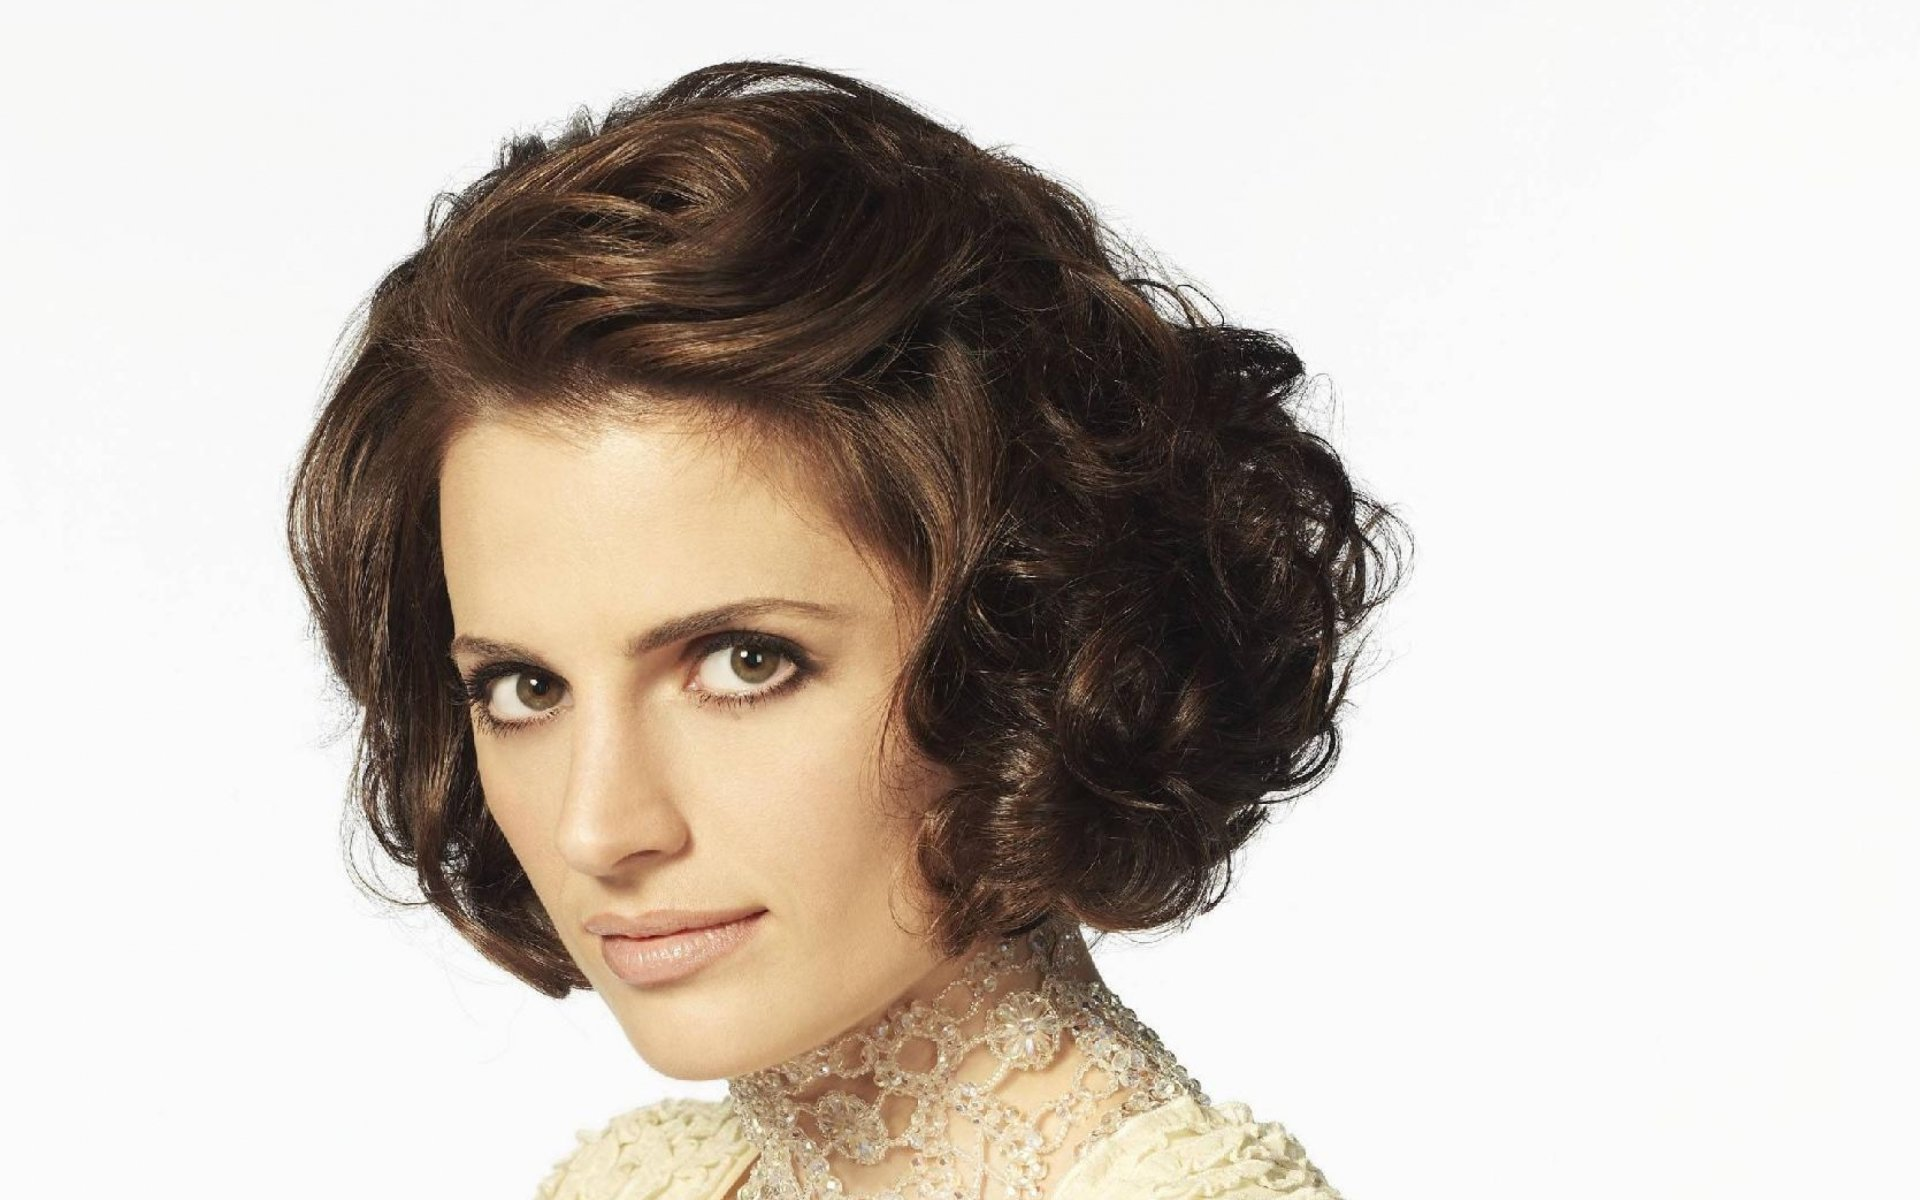 stana katic actress wallpaper - photo #15